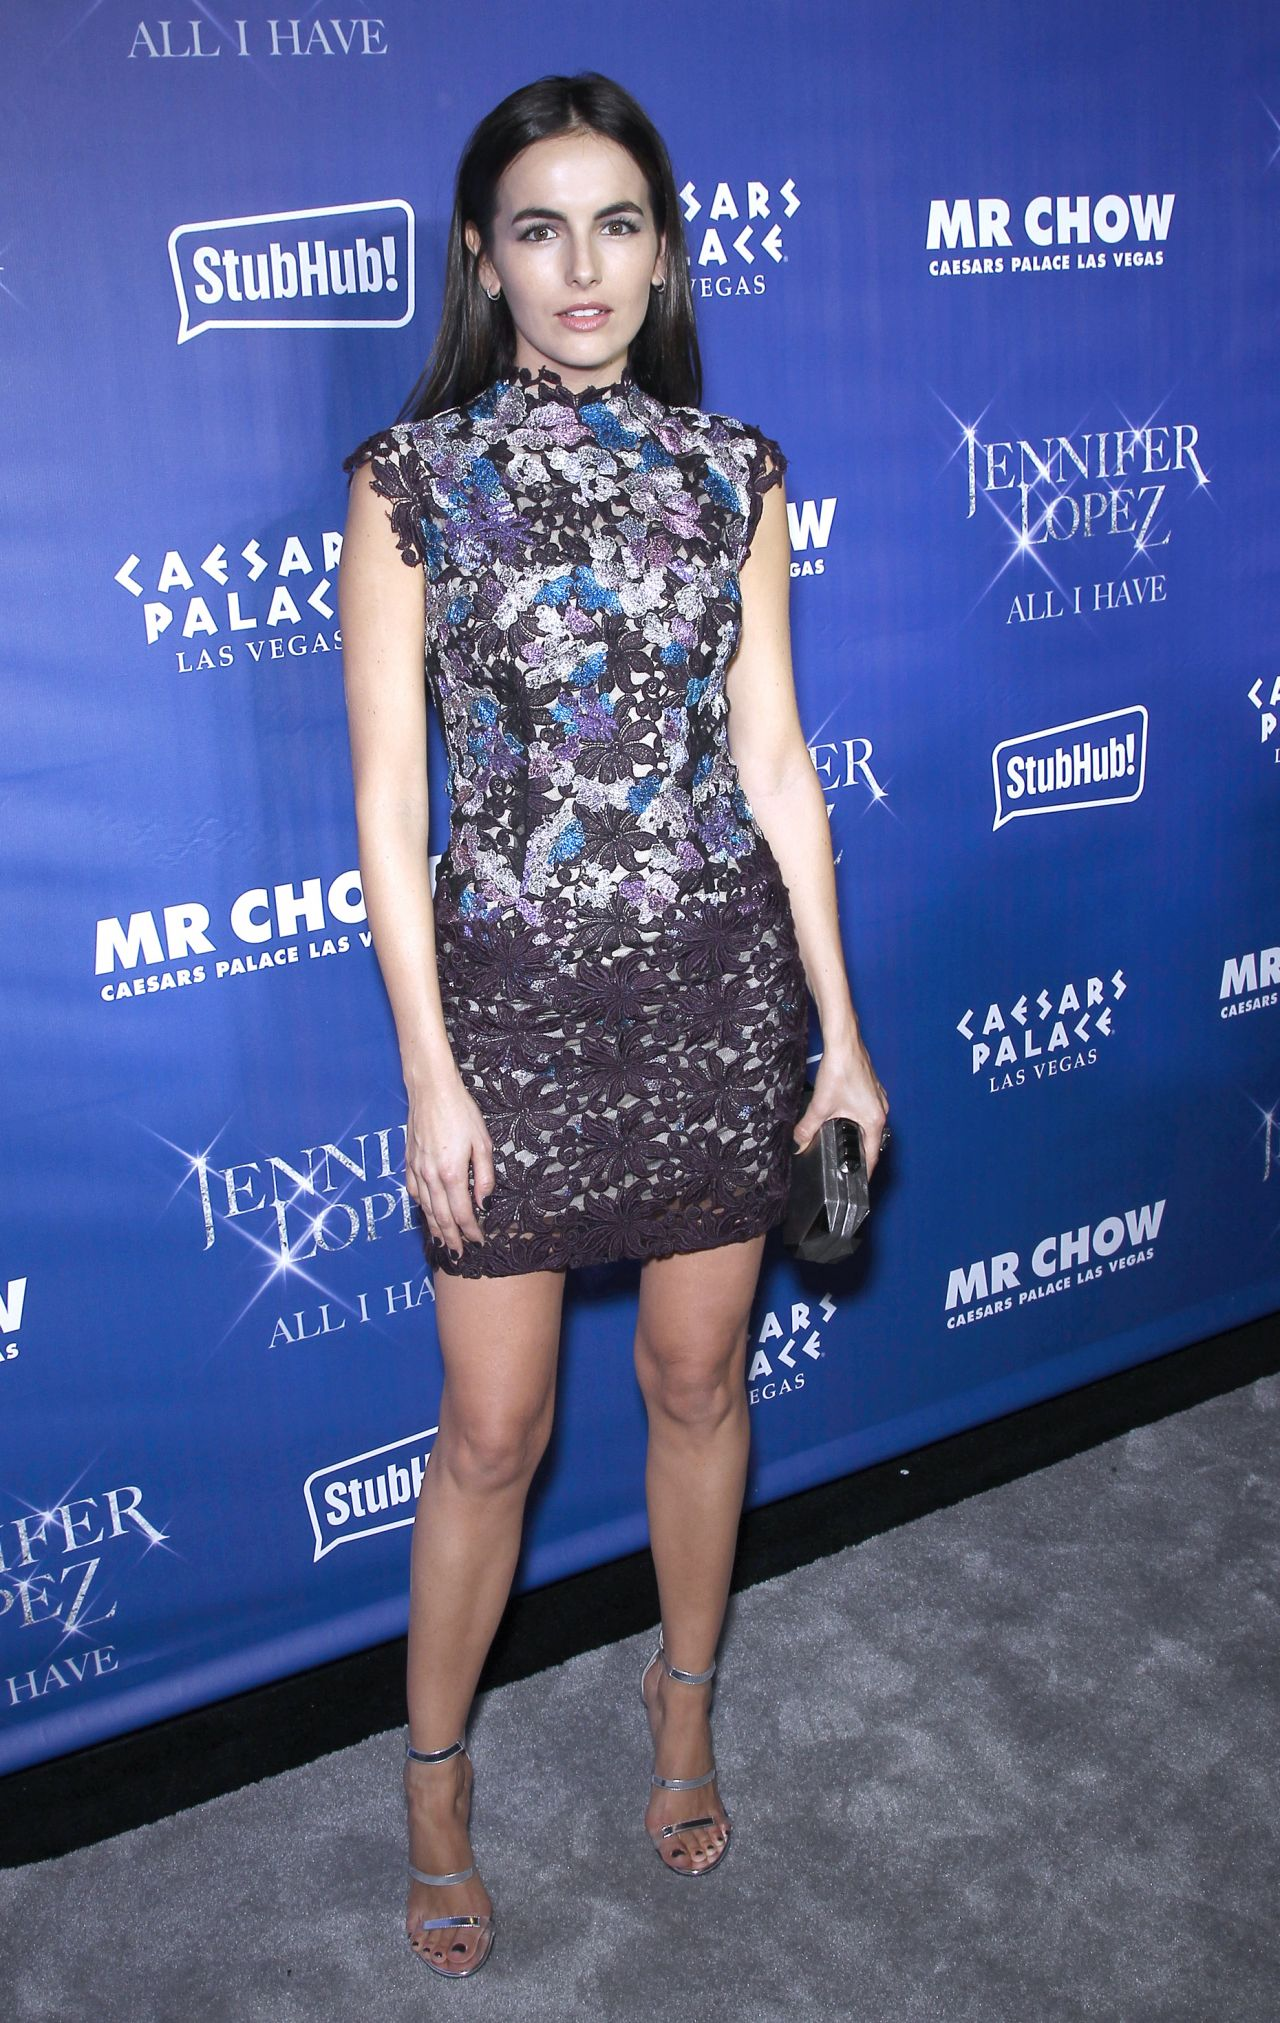 camilla-belle-jennifer-lopez-s-all-i-have-residency-after-party-in-las-vegas-january-2016-1